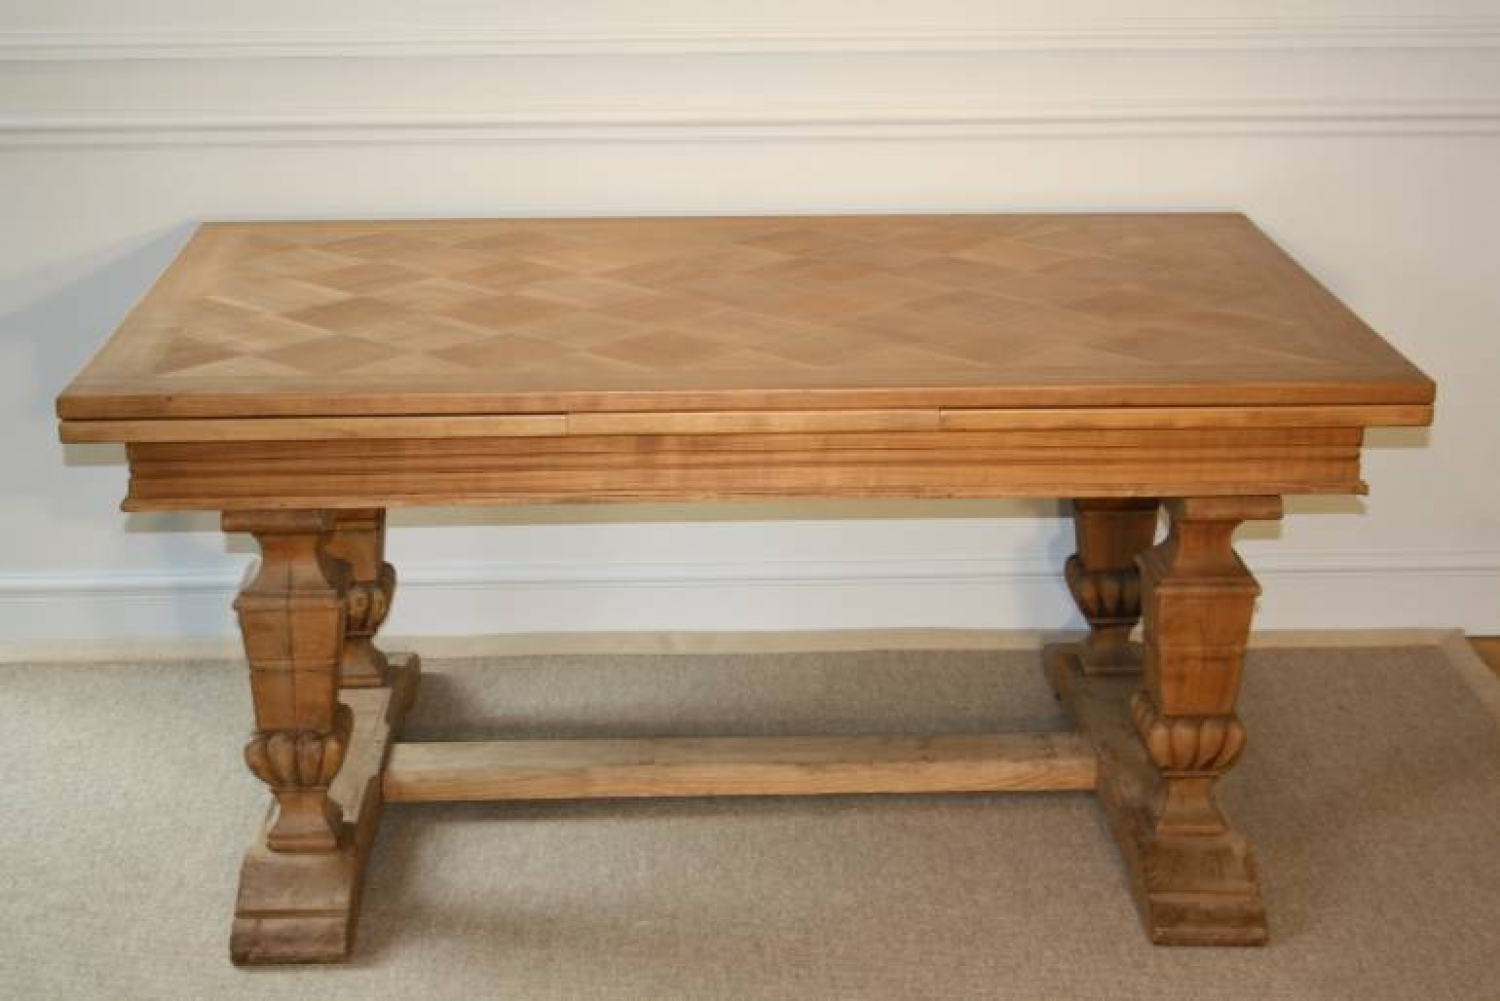 Wooden parquet extending dining table. French